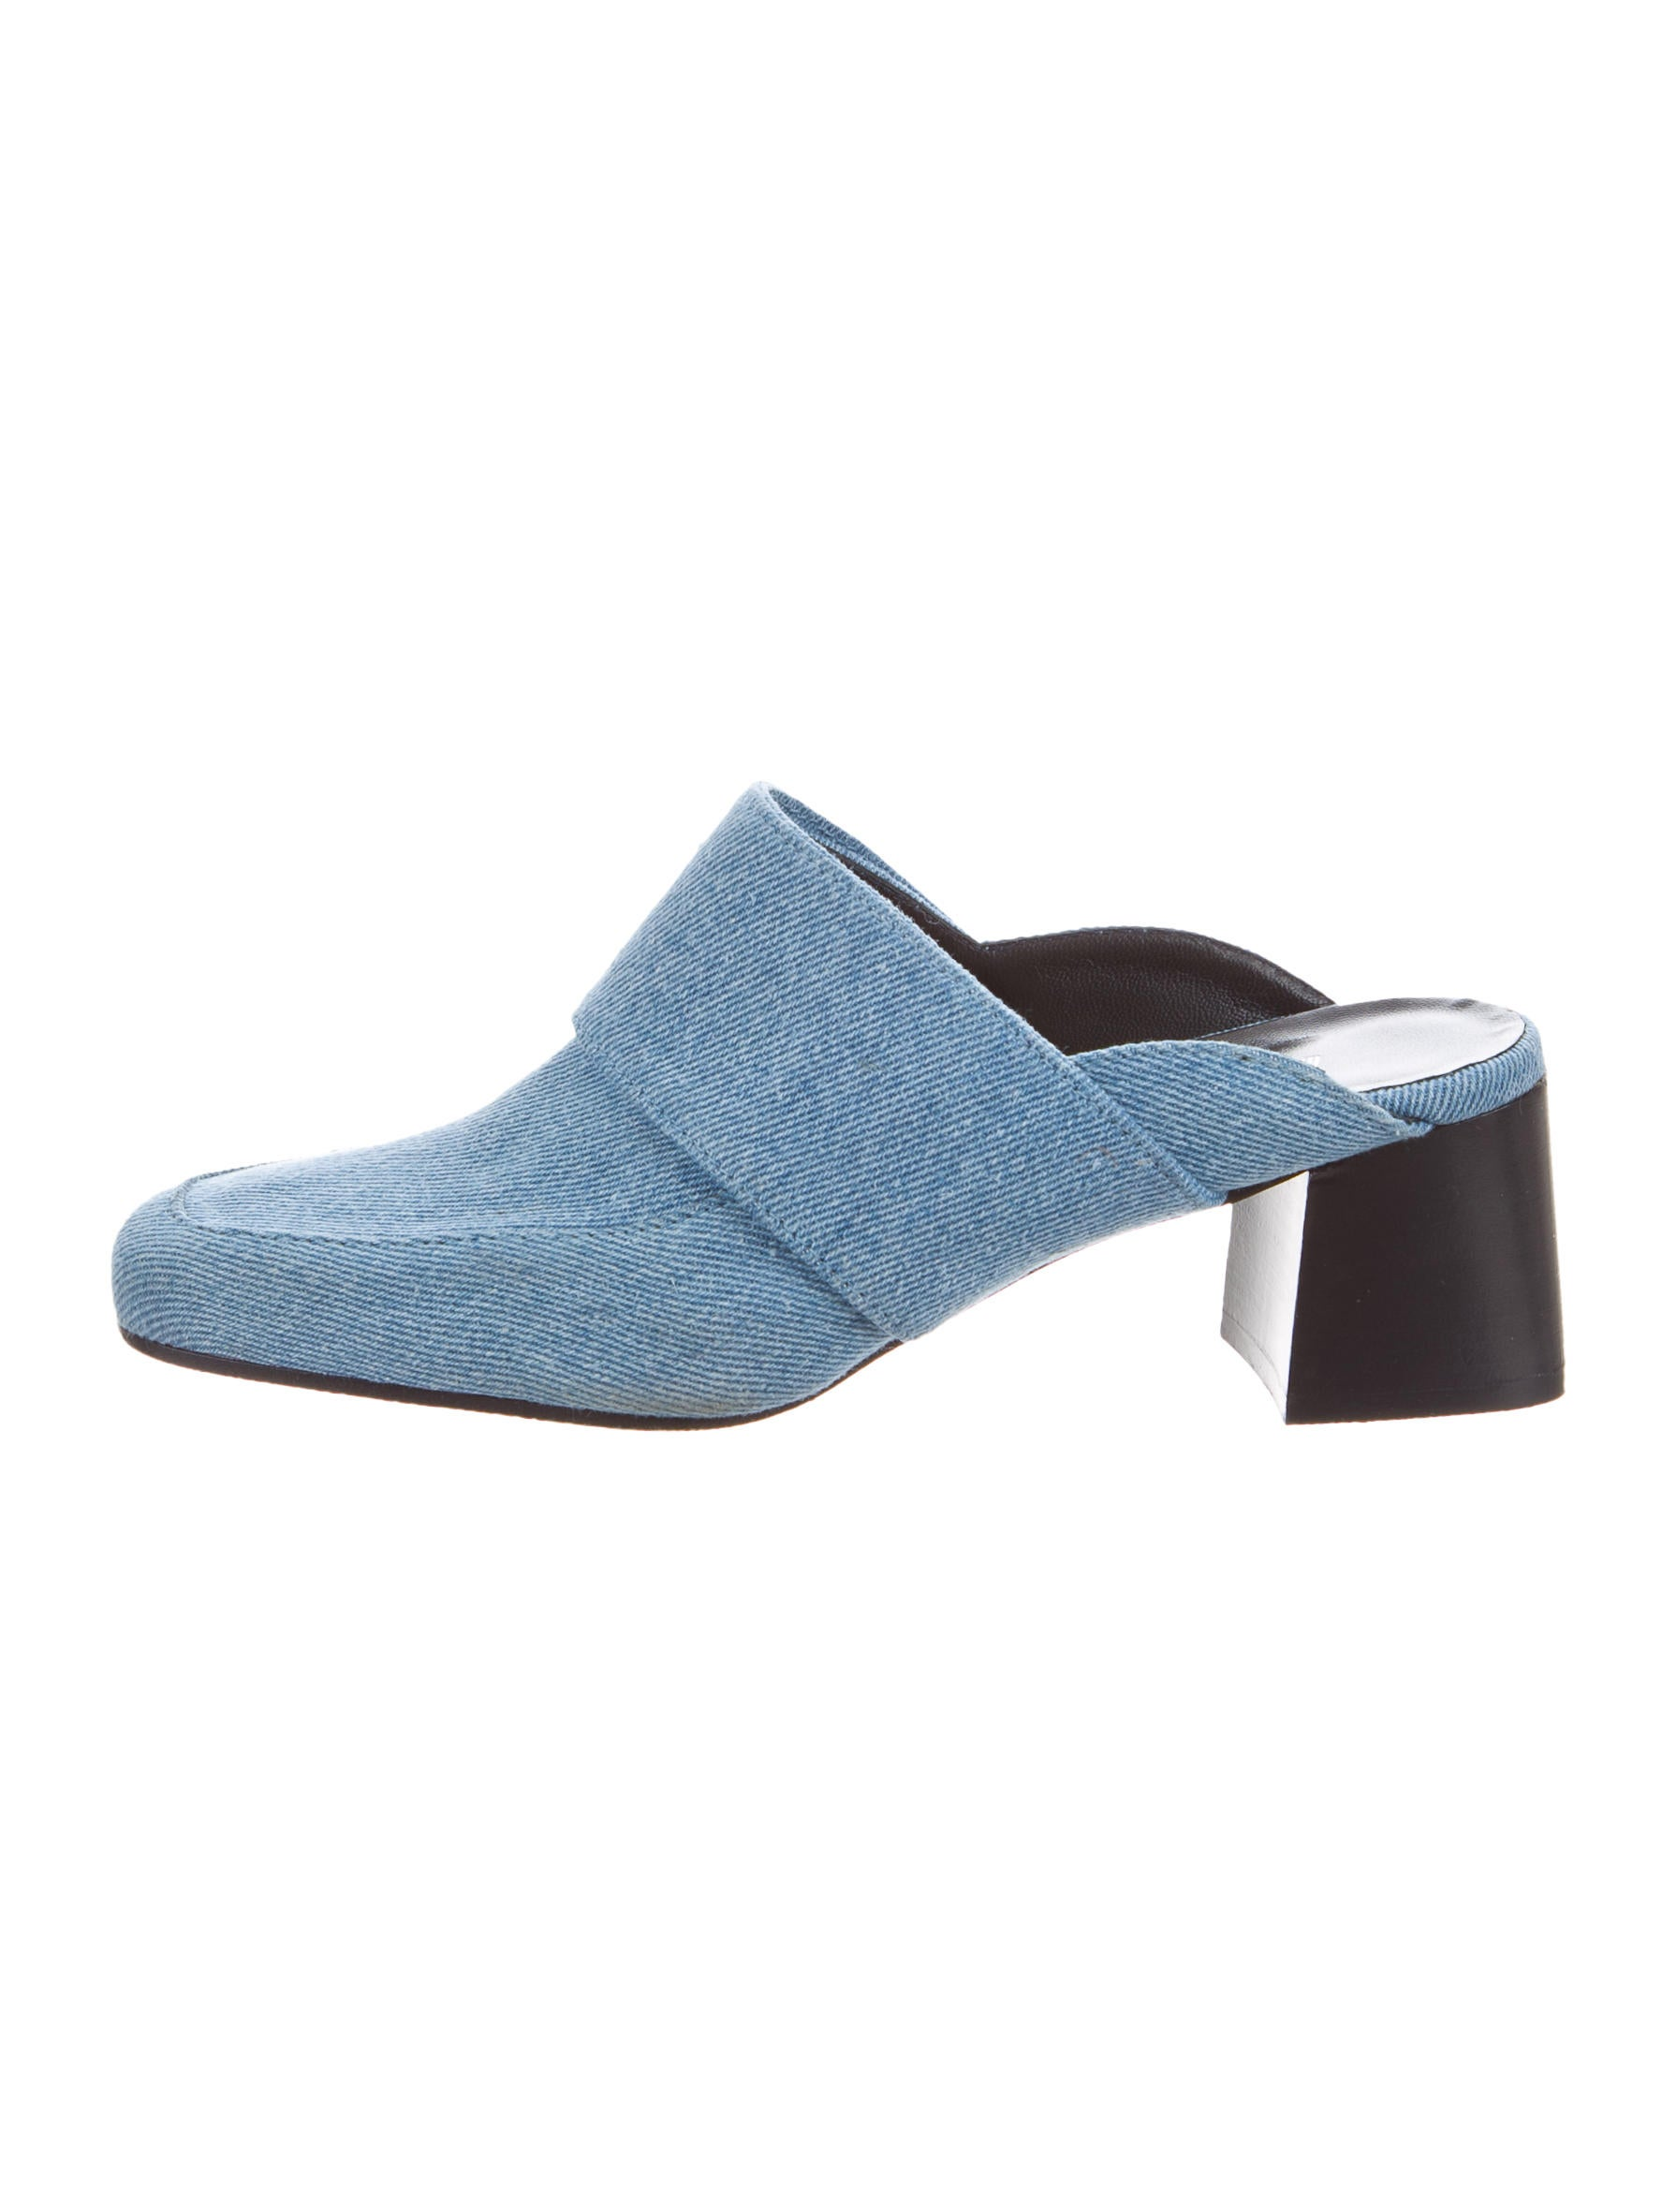 outlet lowest price Aska Denim Square-Toe Mules sale with mastercard cheap exclusive outlet enjoy 4LUG93Y9